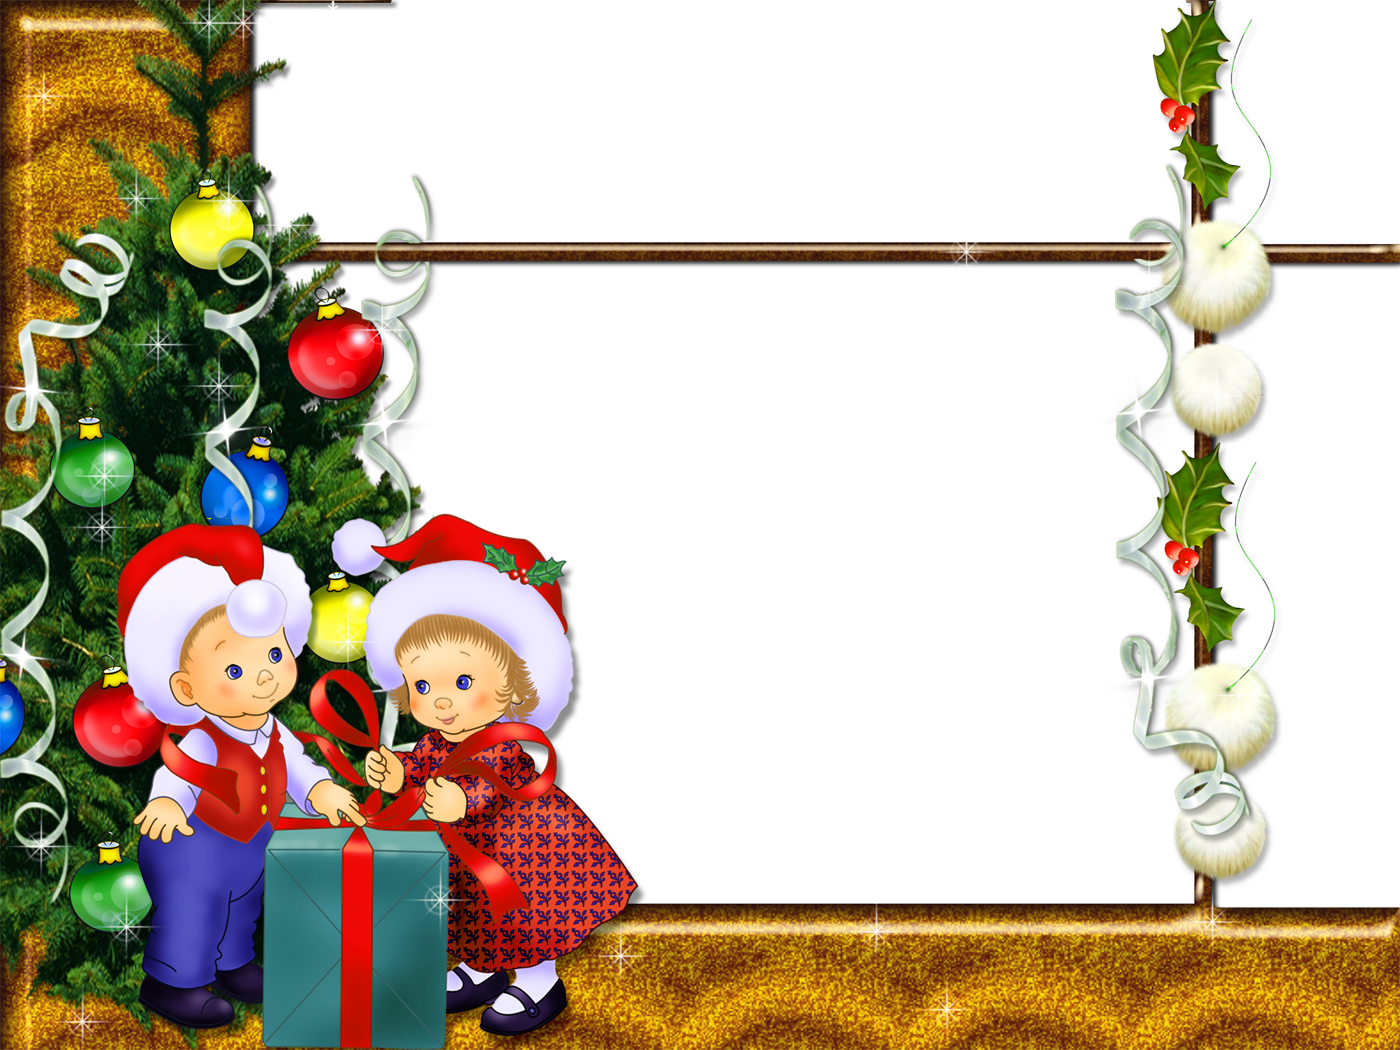 Kid christmas clipart jpg royalty free Christmas Photo Frame with Kids | Gallery Yopriceville - High ... jpg royalty free